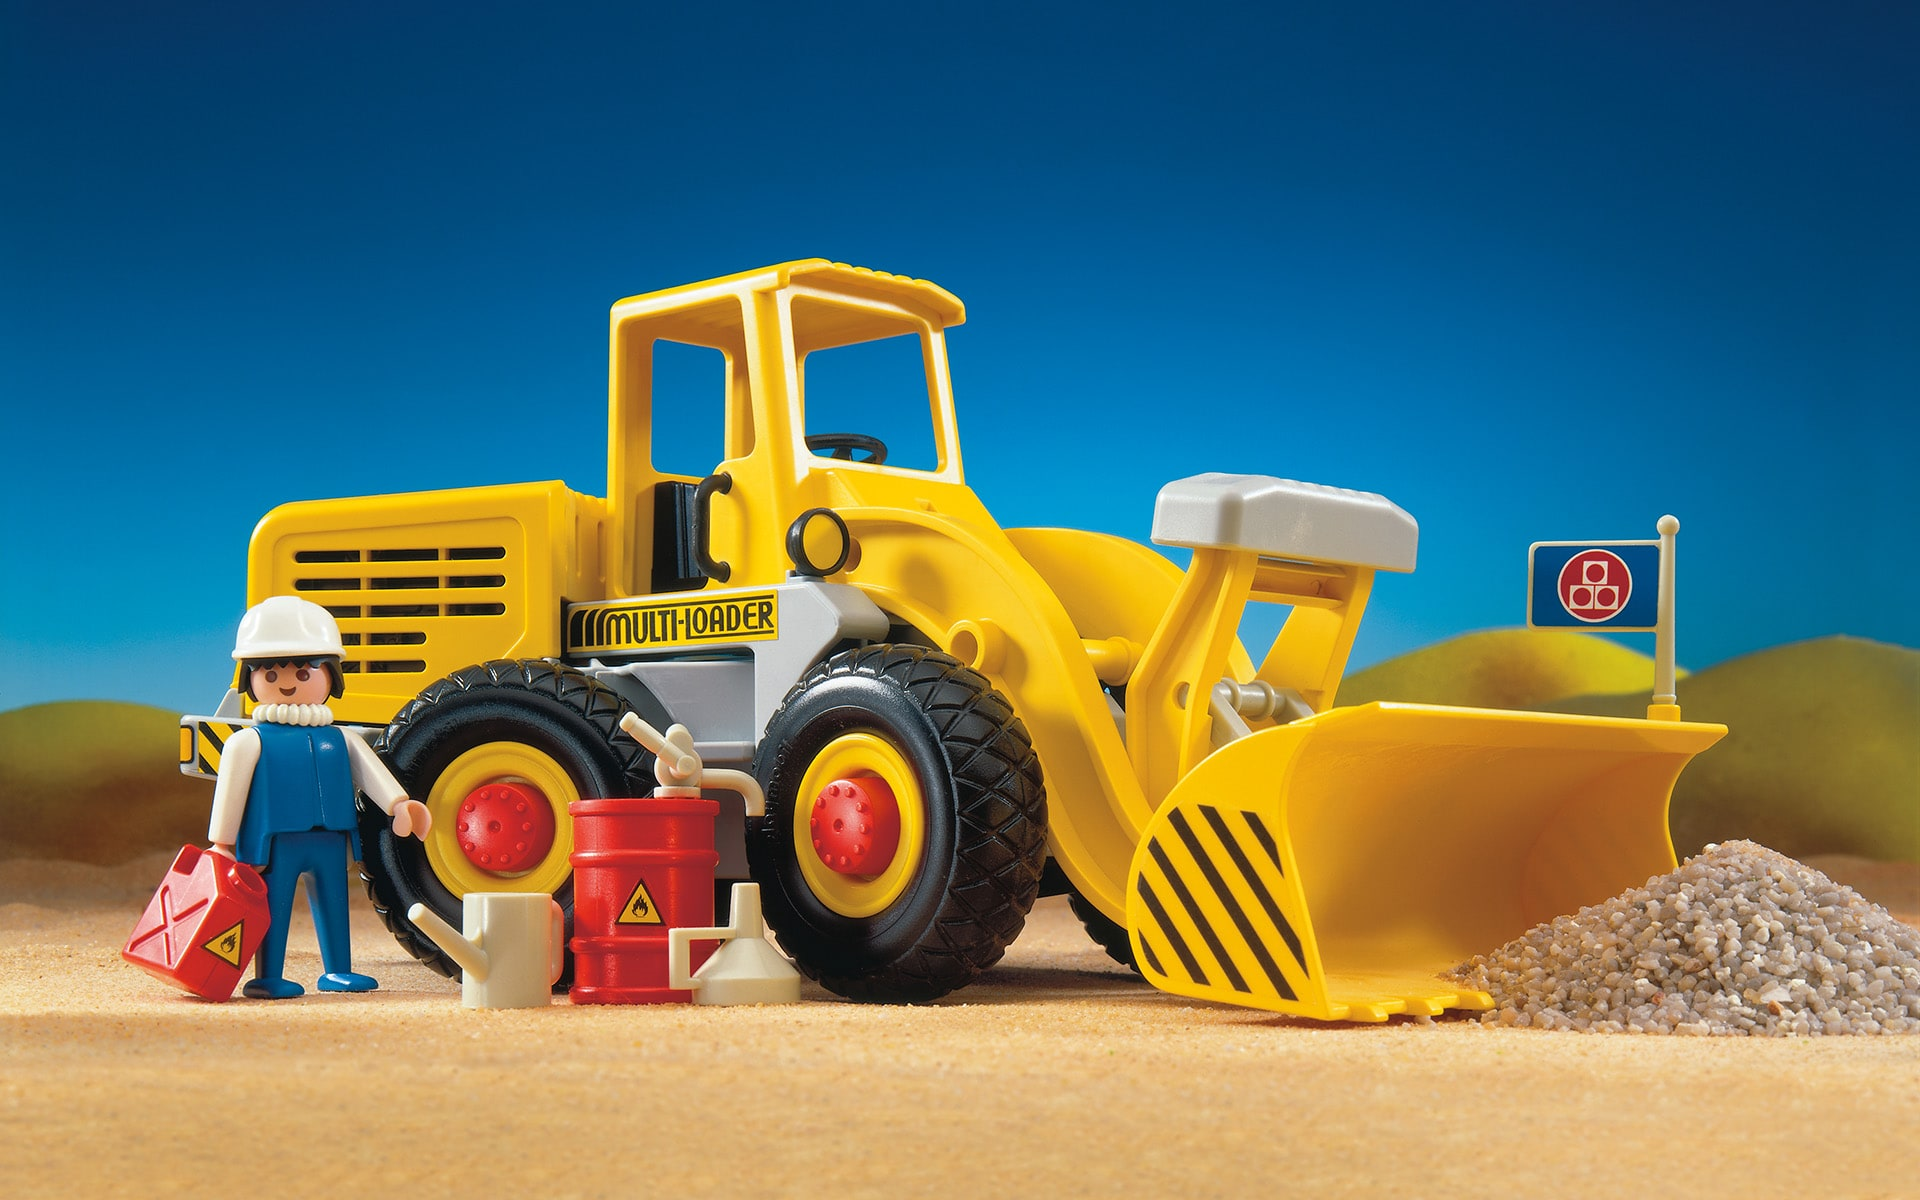 Yellow Toy digger by ITO Design for Playmobil, created in 1987, with construction worker figurine